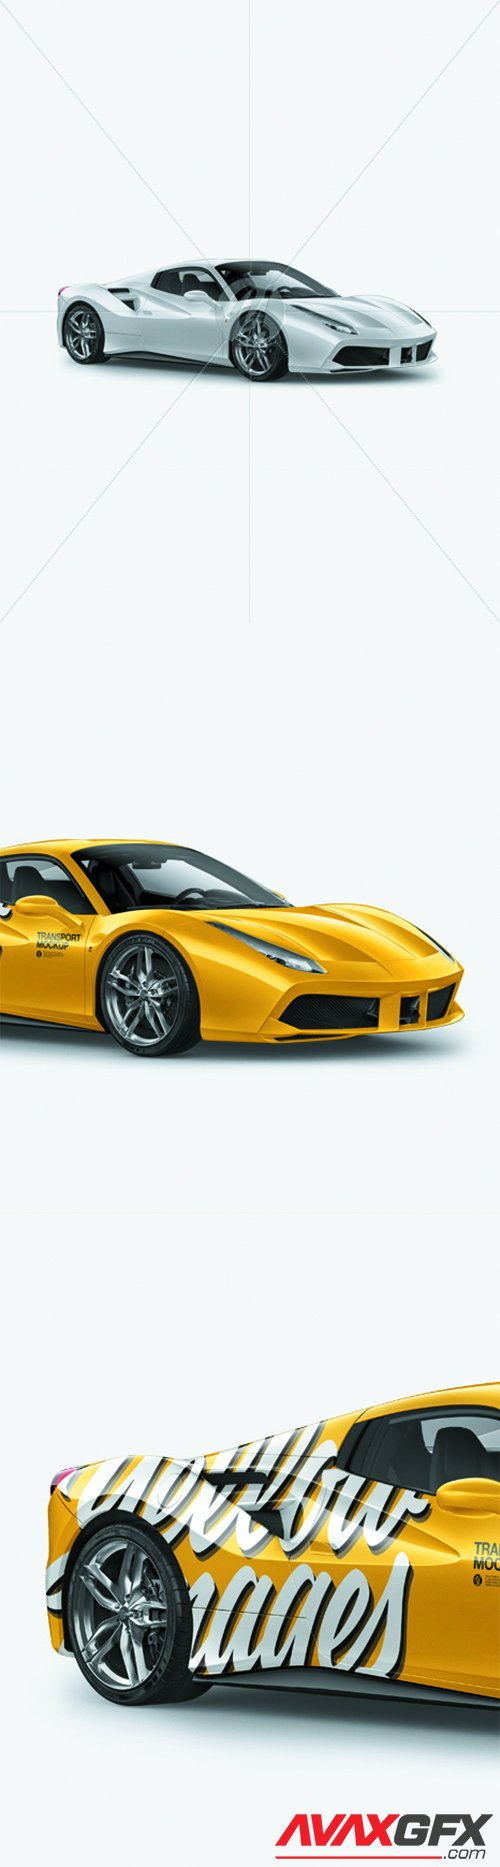 Ferrari 488 Mockup - Half Side View 25751